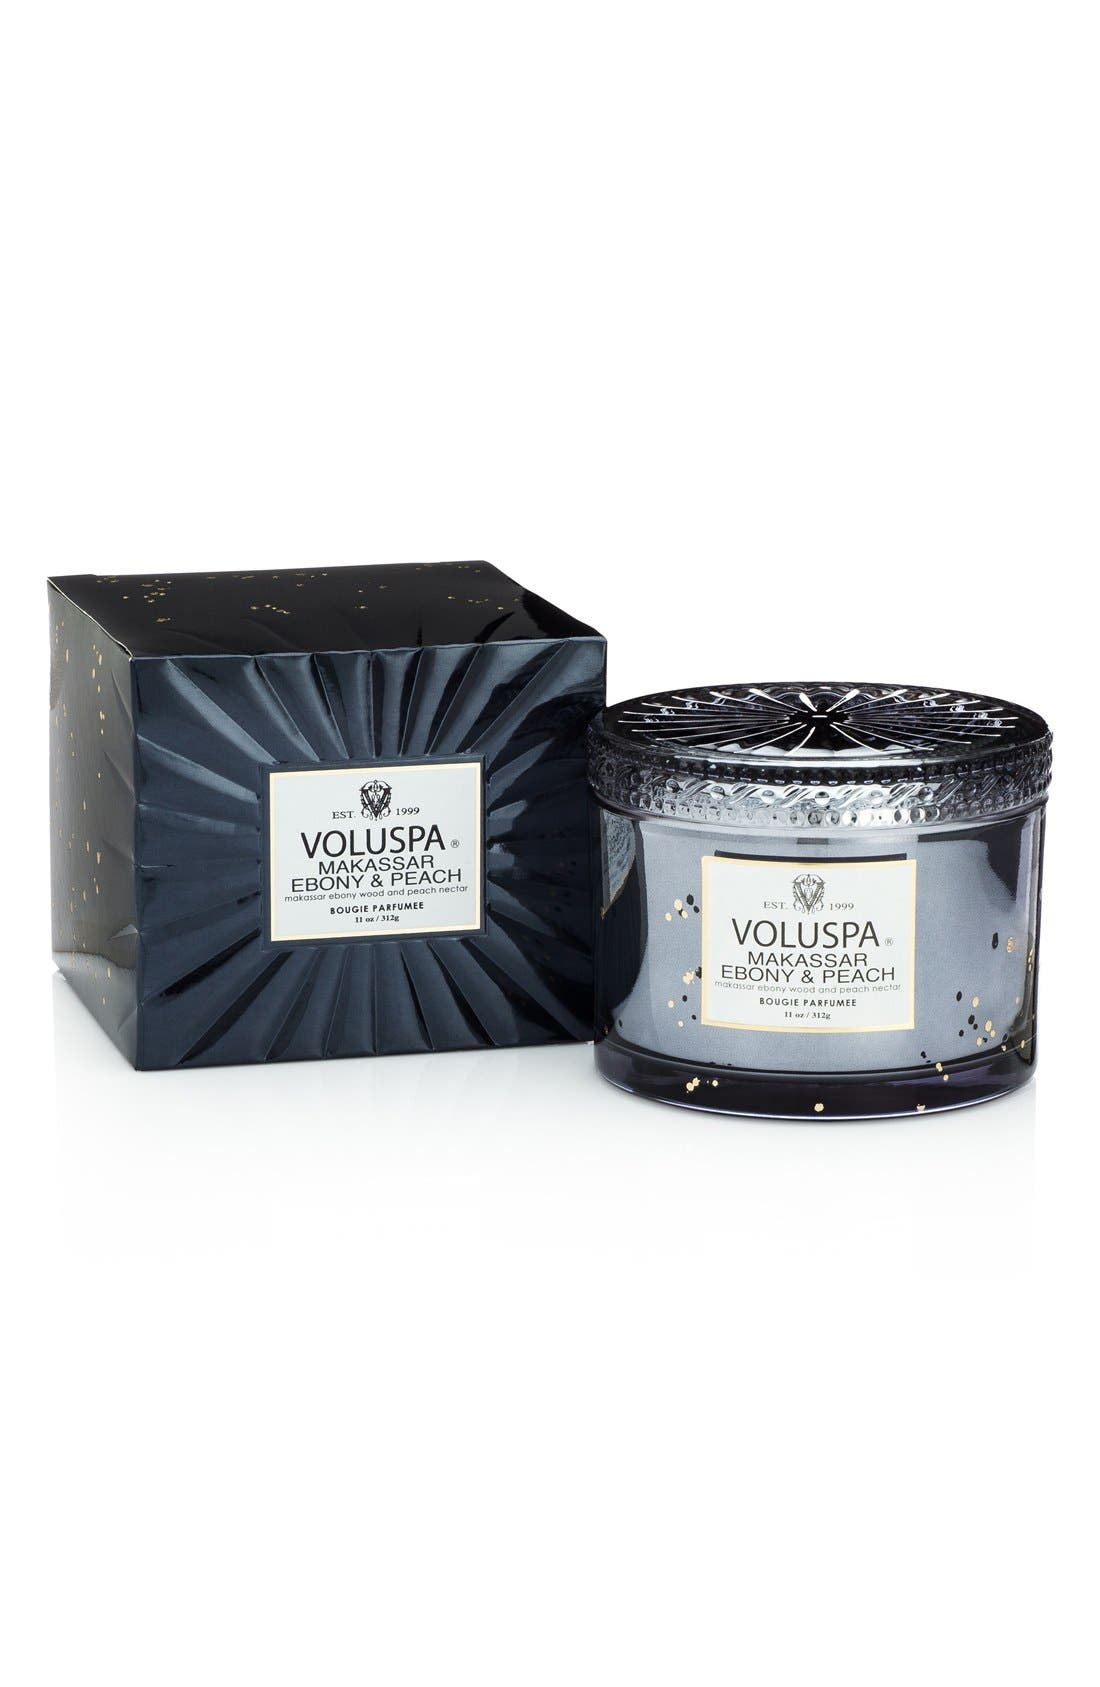 Alternate Image 1 Selected - Voluspa 'Vermeil - Makassar Ebony & Peach' Corta Maison Candle